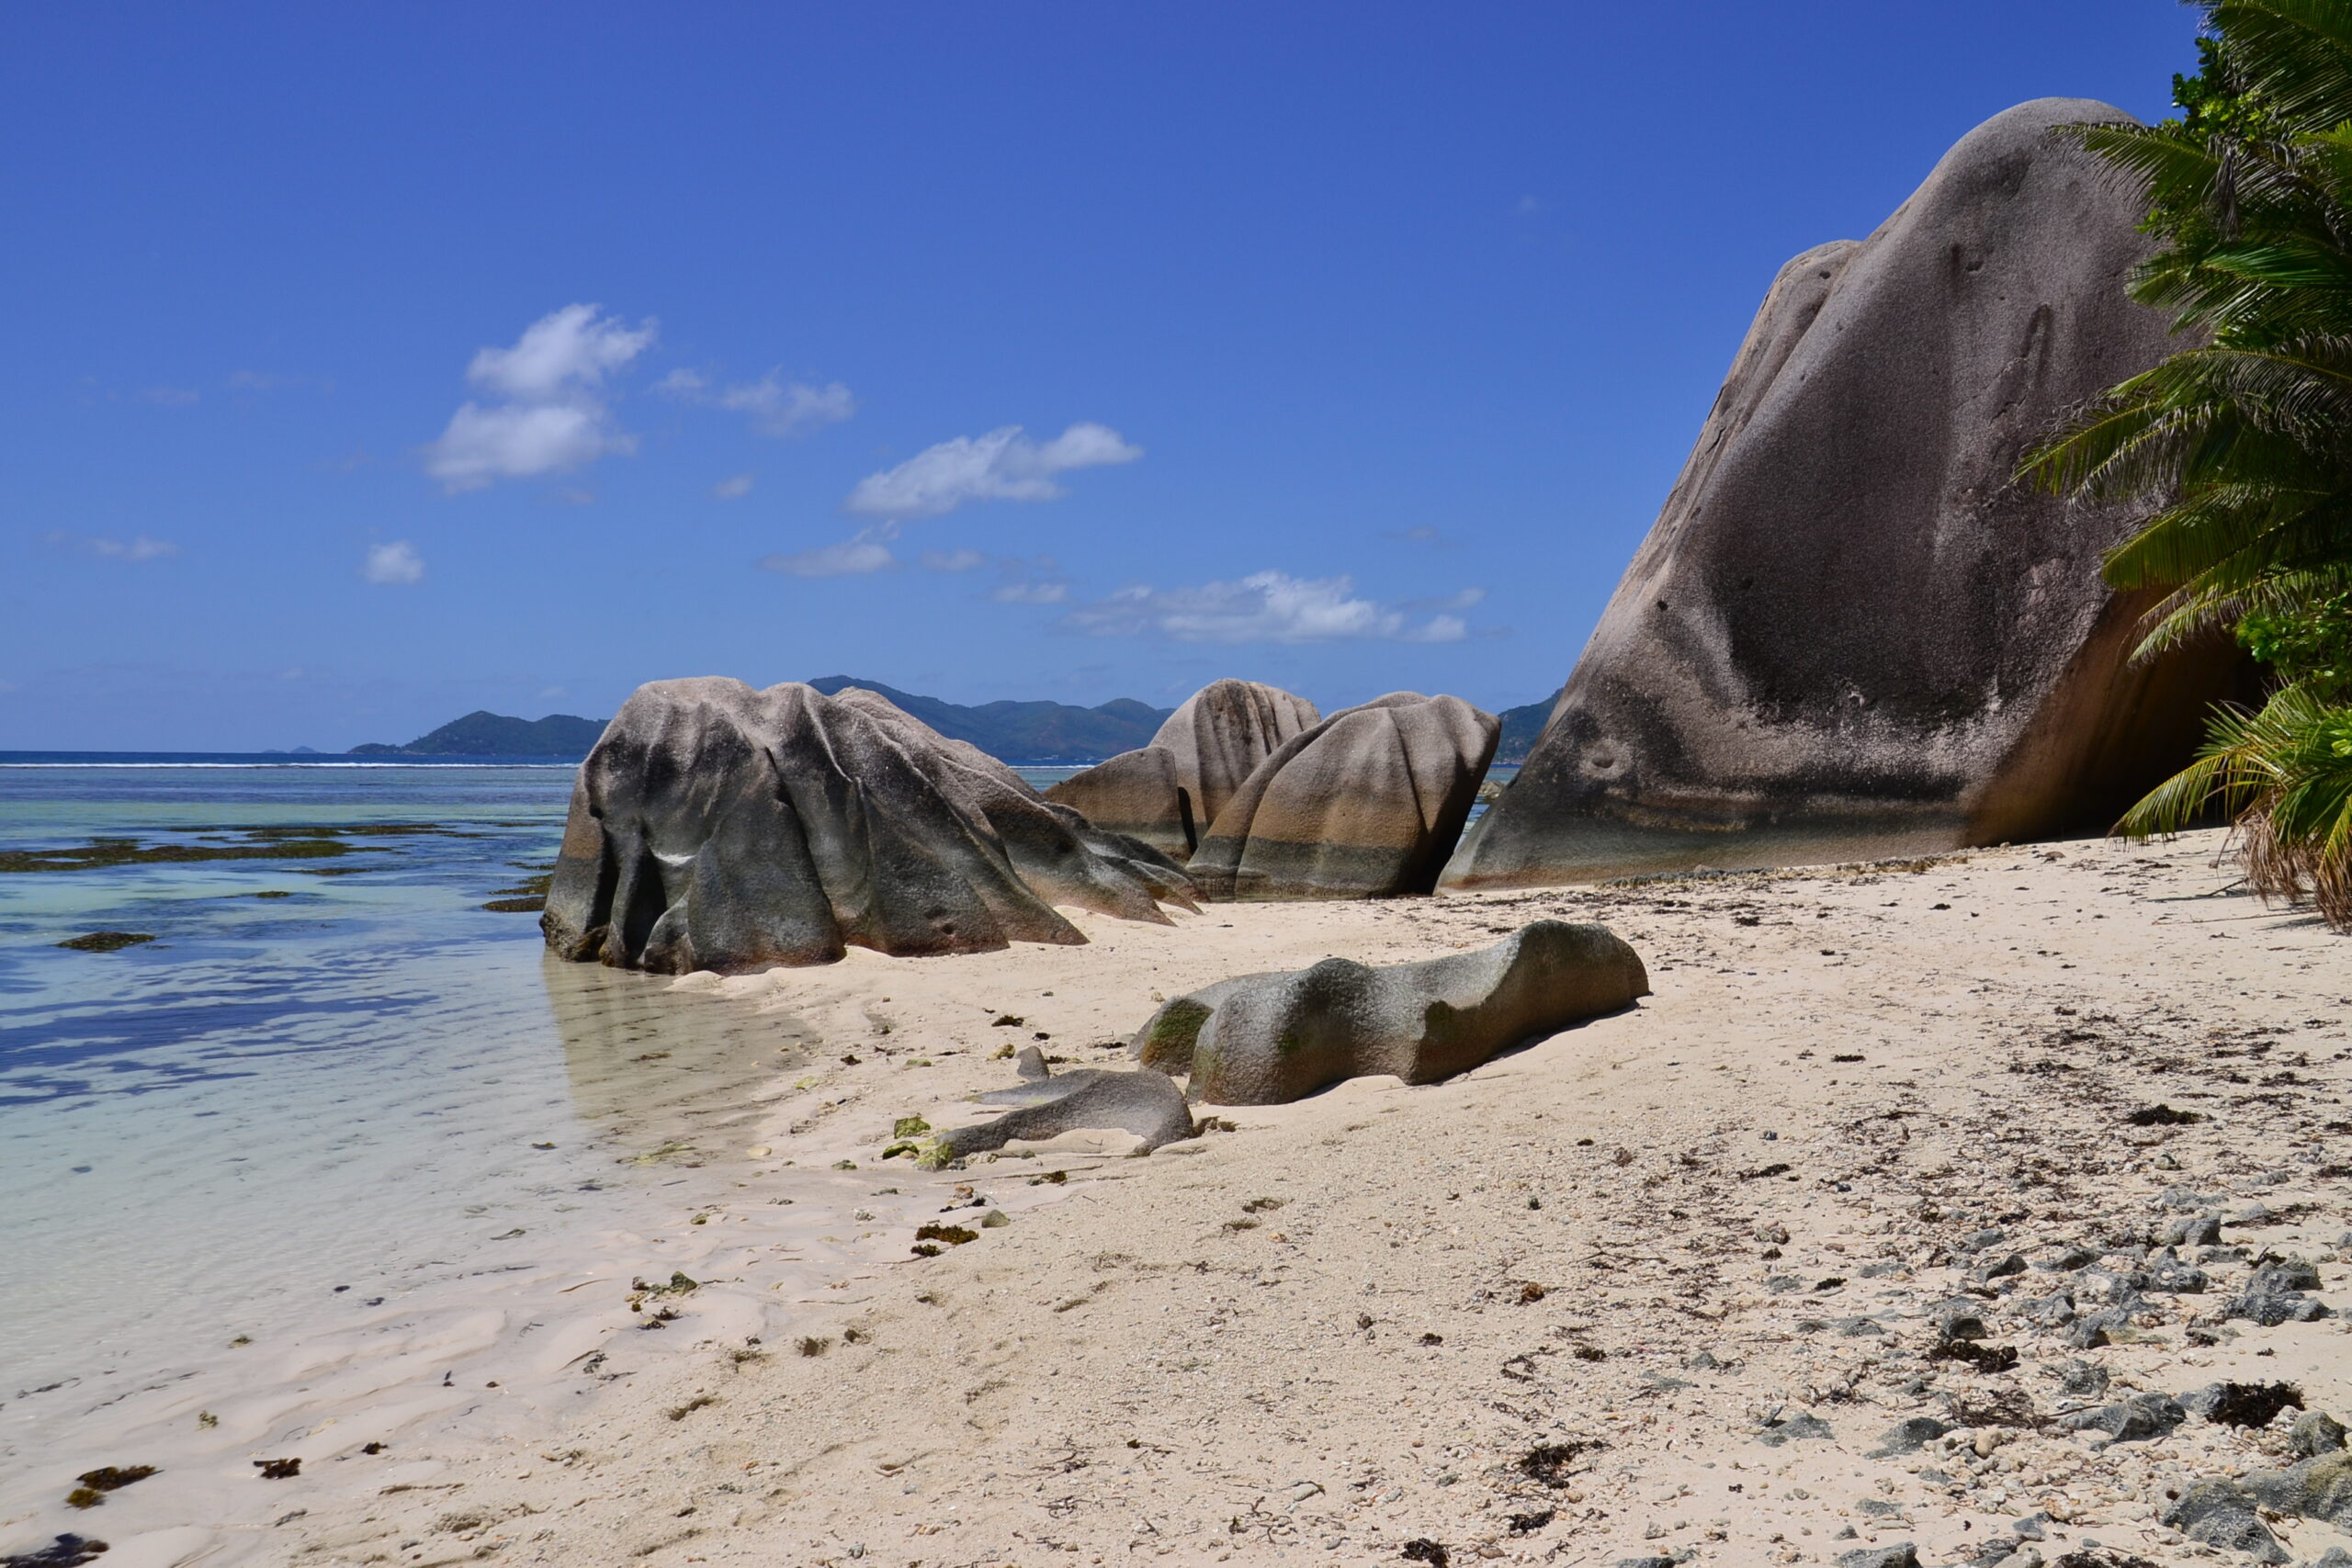 A Complete Guide To LA DIGUE Island In Seychelles